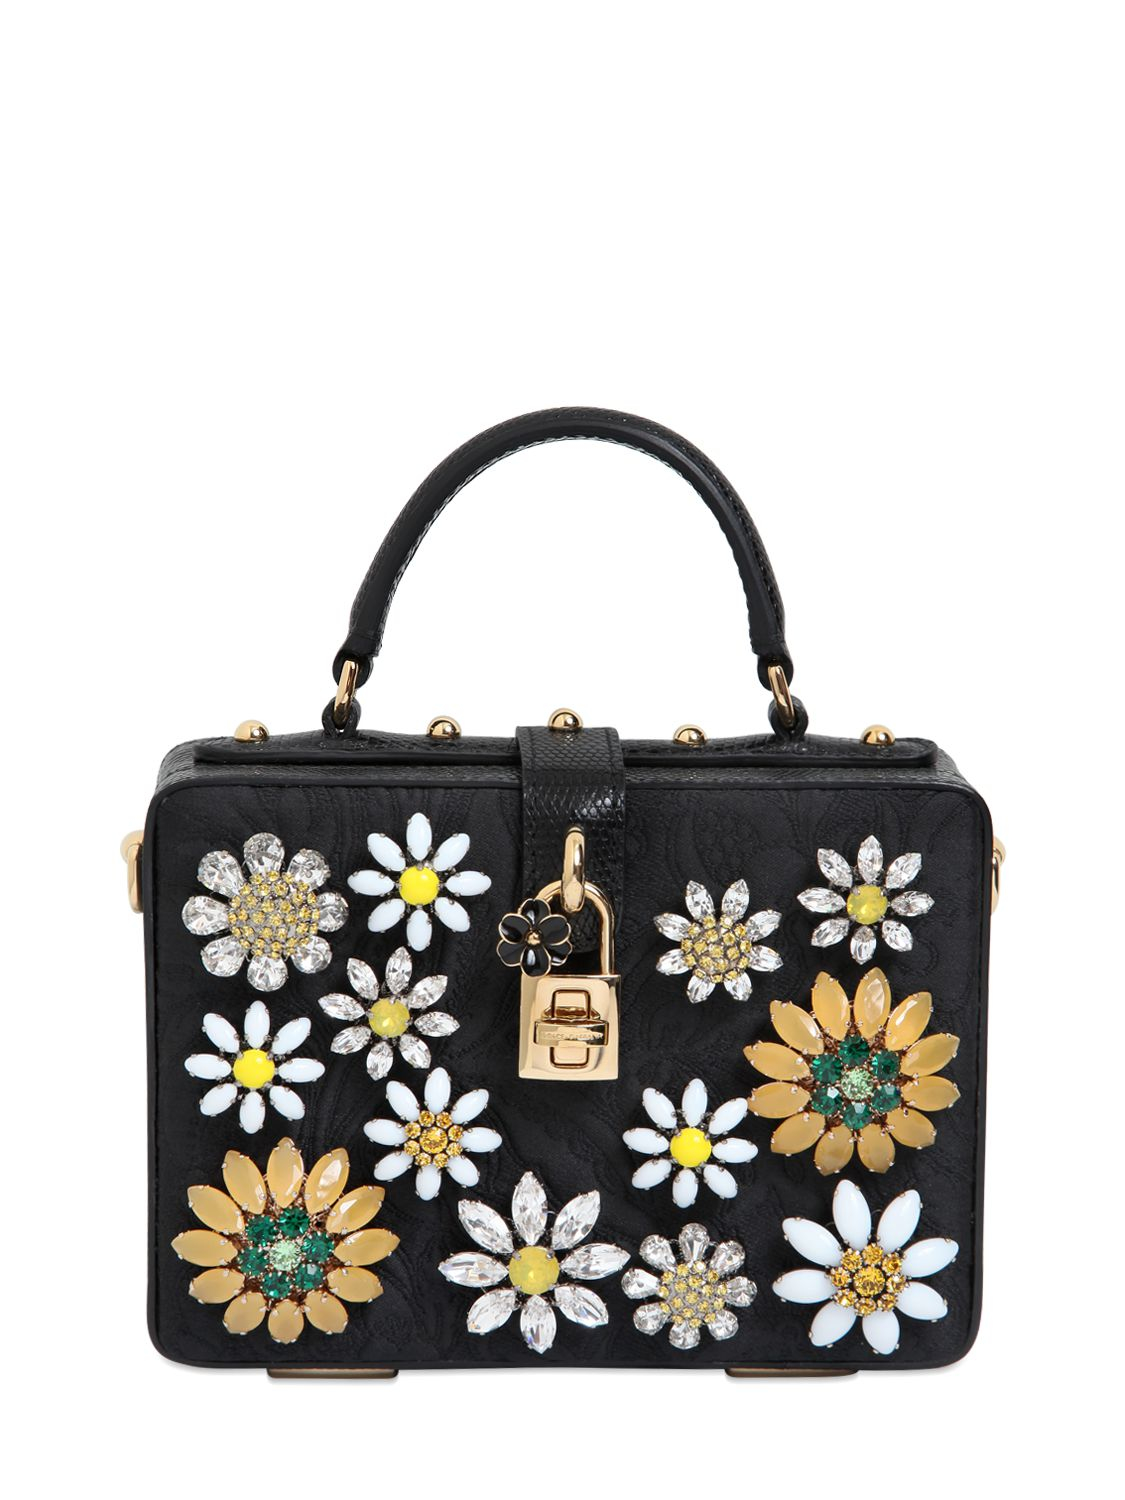 Lyst - Dolce   Gabbana Crystal Flowers Brocade Dolce Bag in Black 6d055ae301708